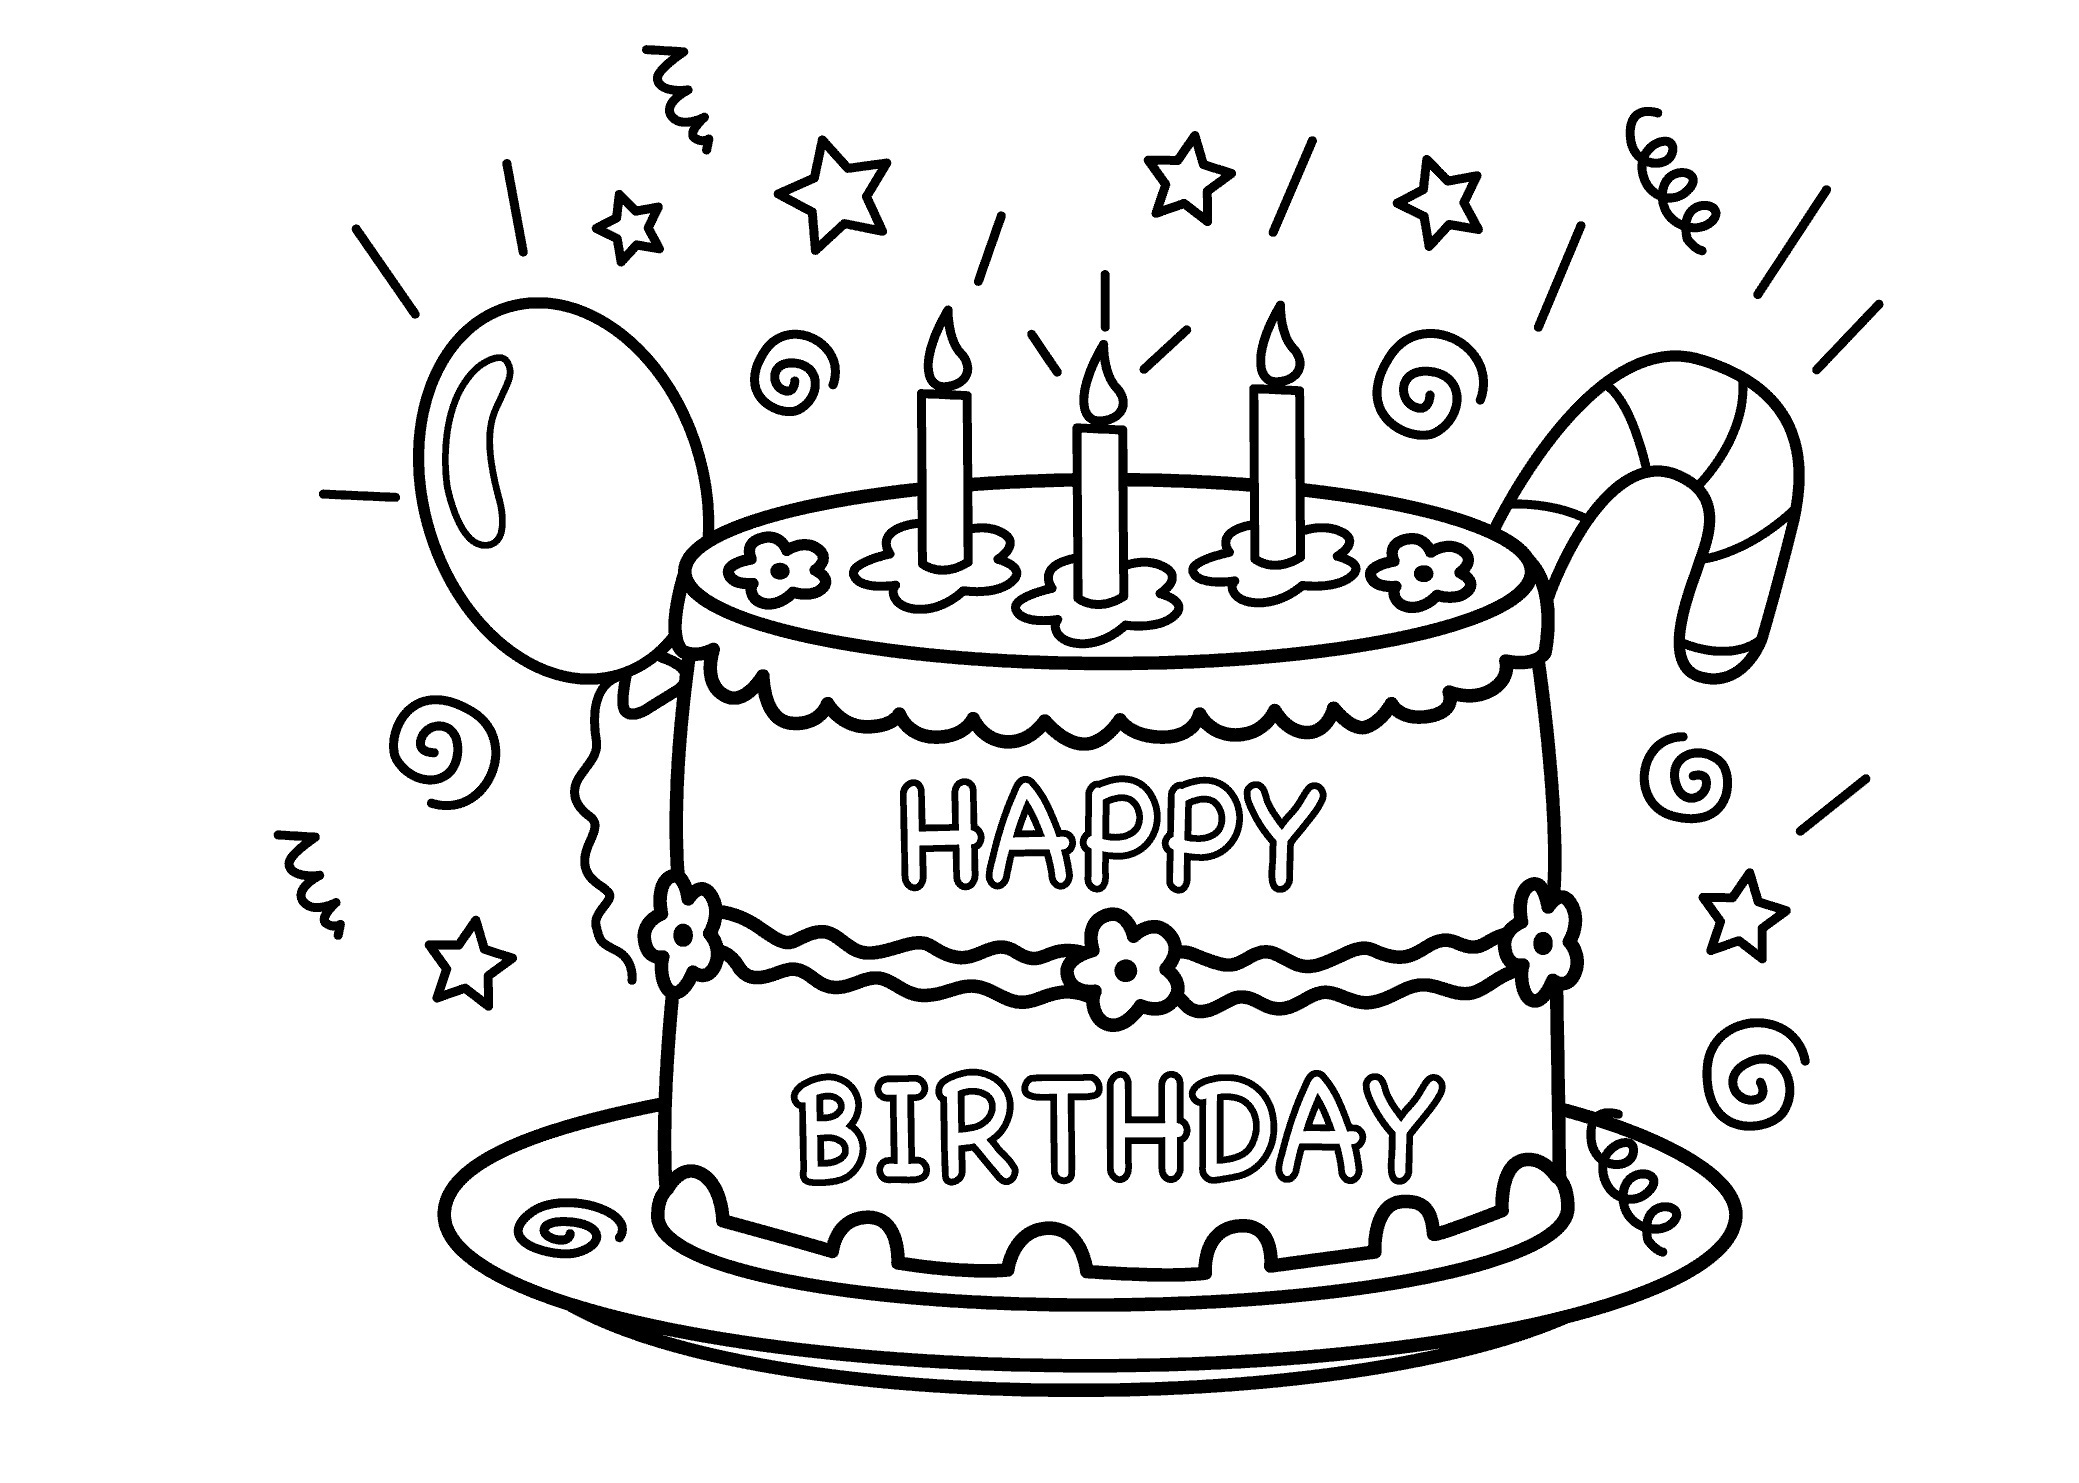 2079x1483 Free Printable Birthday Cake Coloring Pages For Kids Birthday Cake